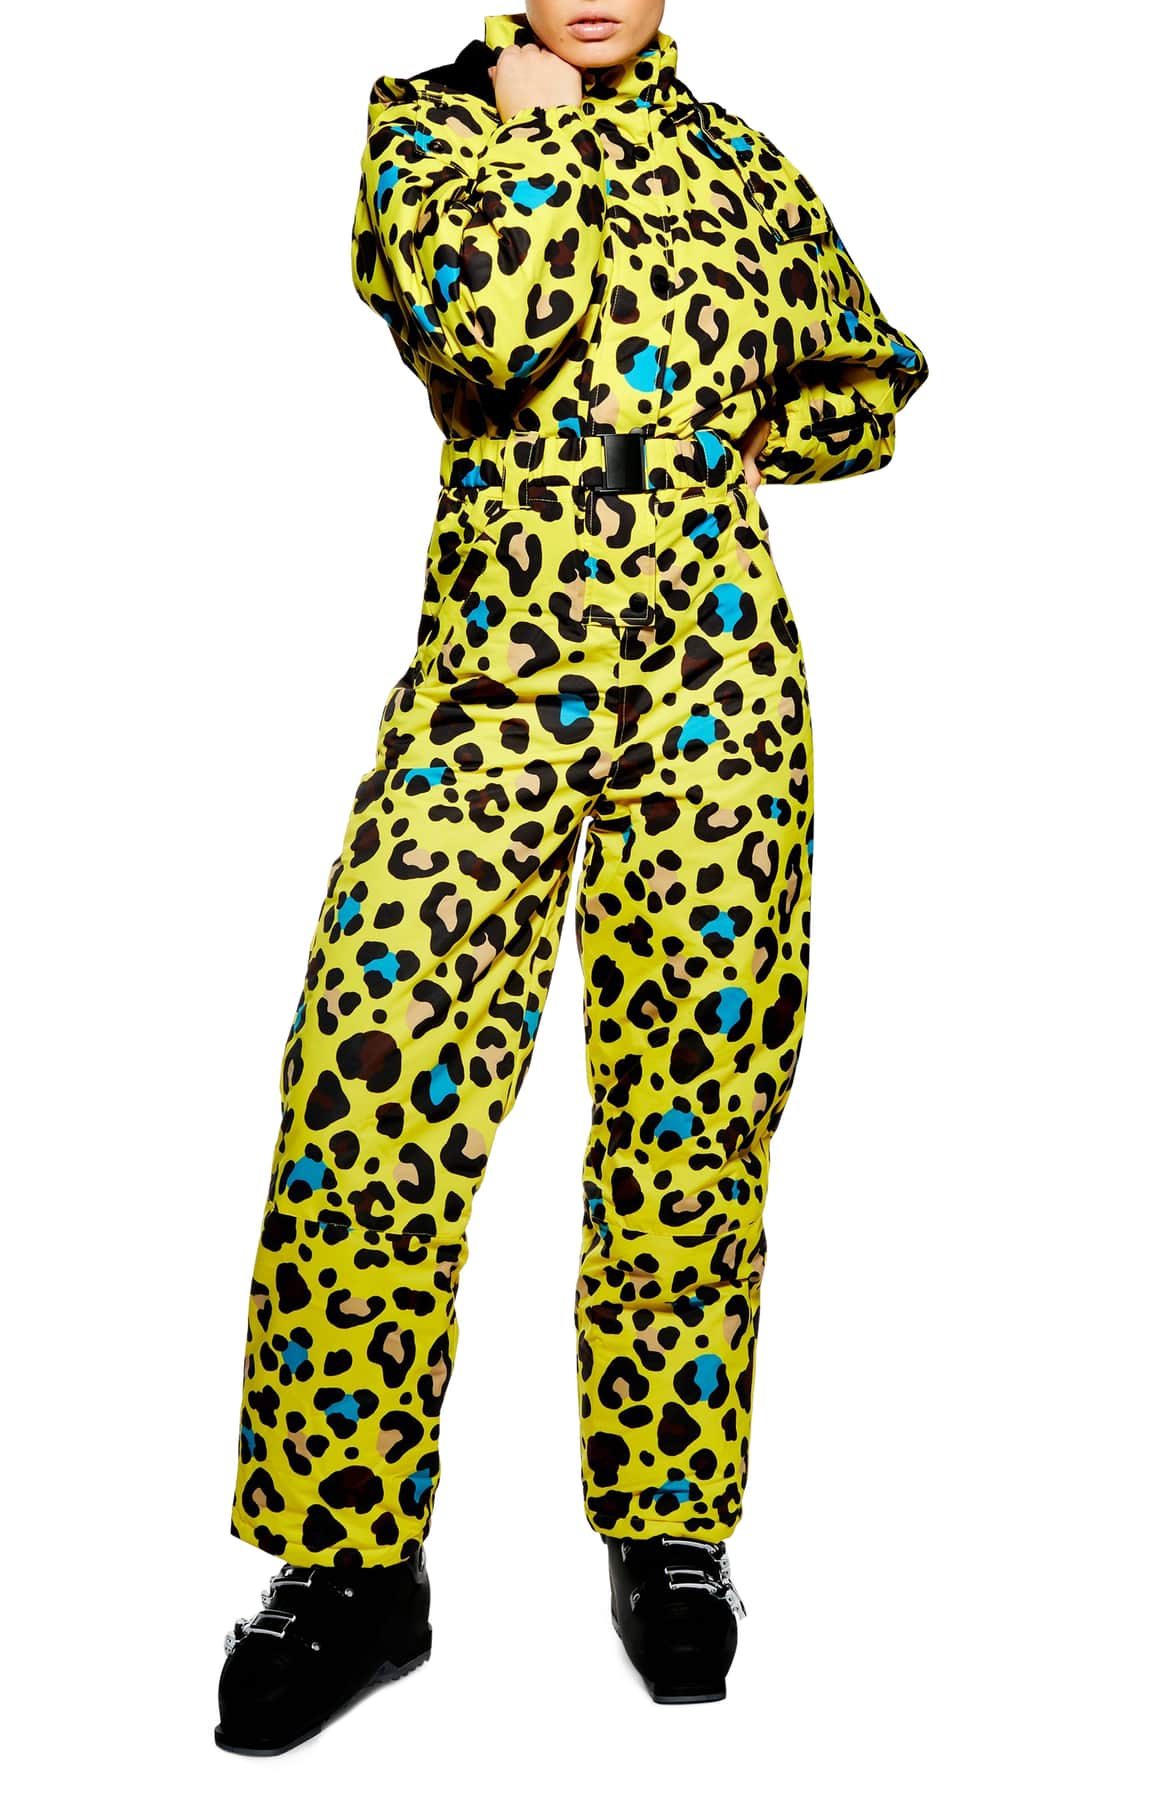 <p>One things for sure, you'll be sure to stand out in this number! Hit the slopes in this breathable, waterproof jumpsuit styled with a detachable hood in a vibrant animal print.{&amp;nbsp;}$330.00 (Image: Nordstrom){&amp;nbsp;}</p><p></p>